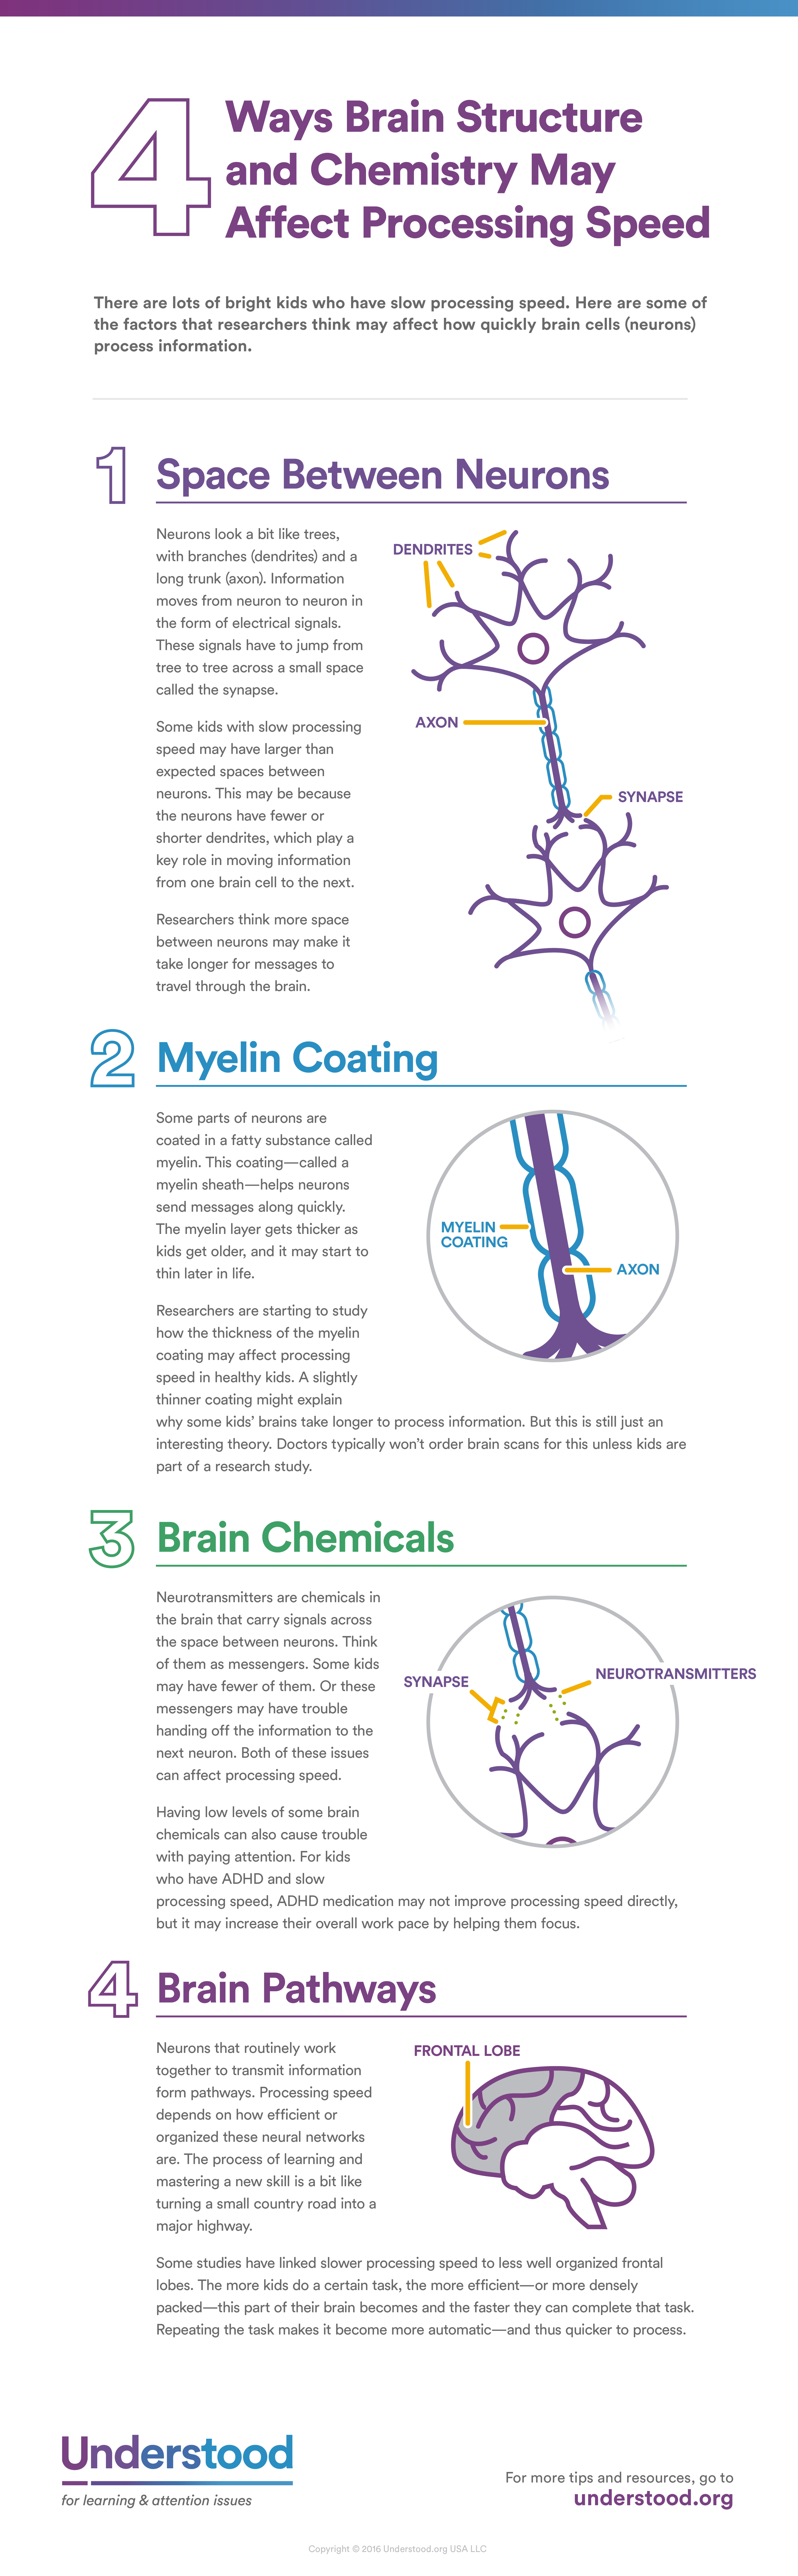 At A Glance 4 Ways Brain Structure And Chemistry May Affect Processing Speed